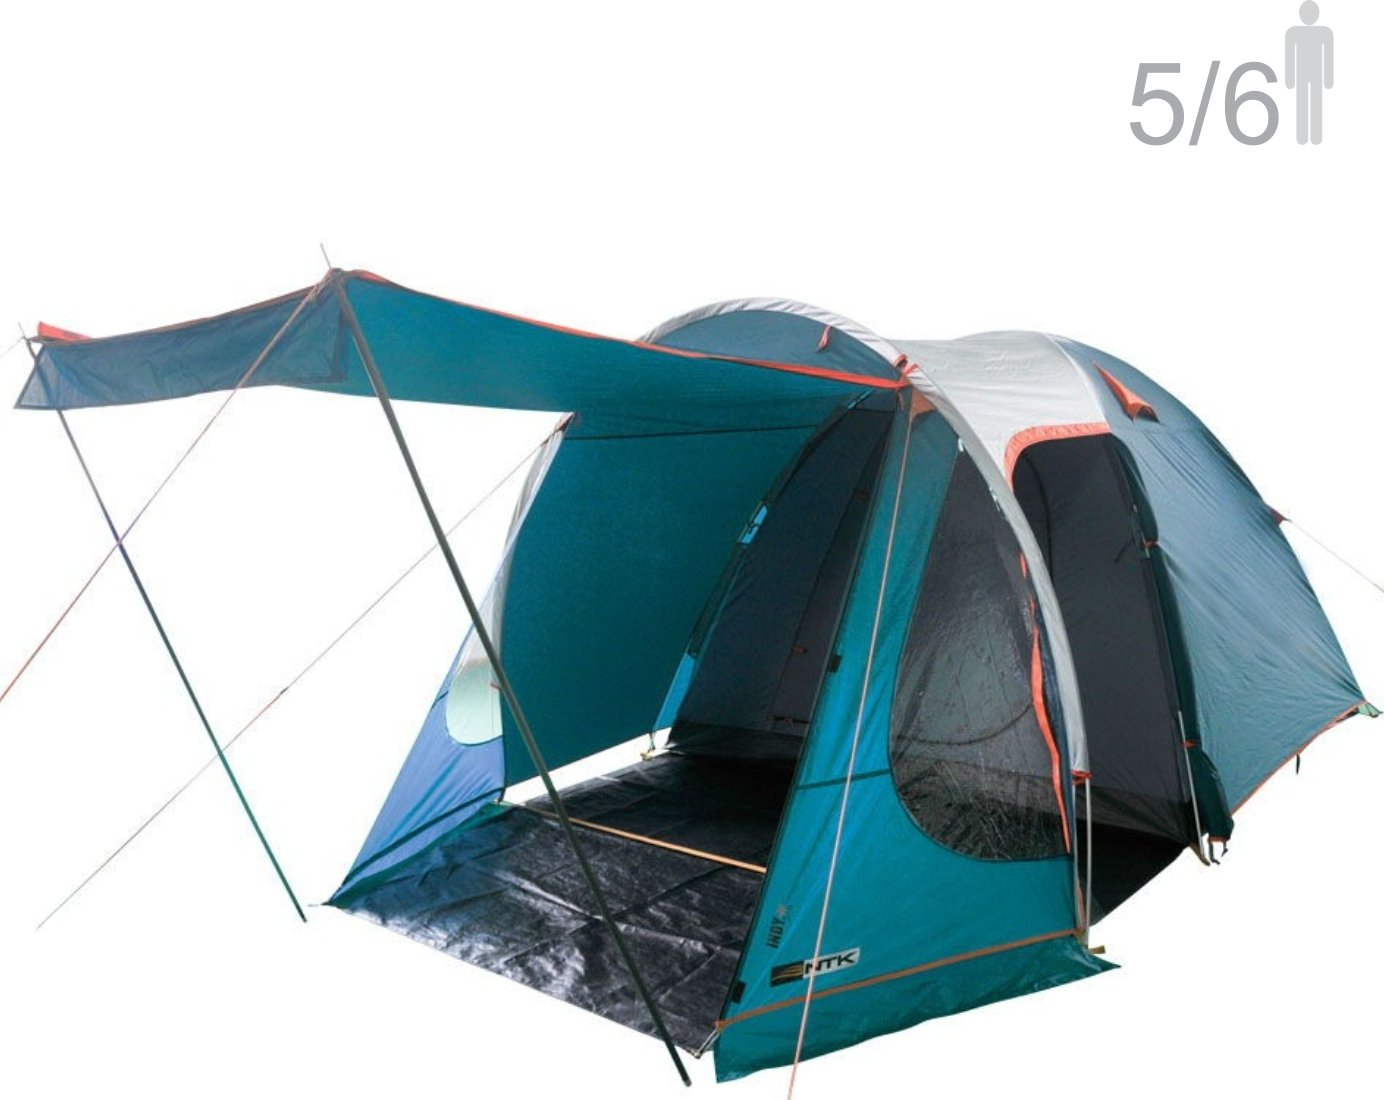 NTK-Indy-GT-XL-Sleeps-up-to-6-Person-142-by-80-FT-Outdoor-Dome-Family-Camping-Tent-100-Waterproof-2500mm-European-Design-Easy-Assembly-Durable-Fabric-Full-Coverage-Rainfly-Micro-Mosquito-Mesh